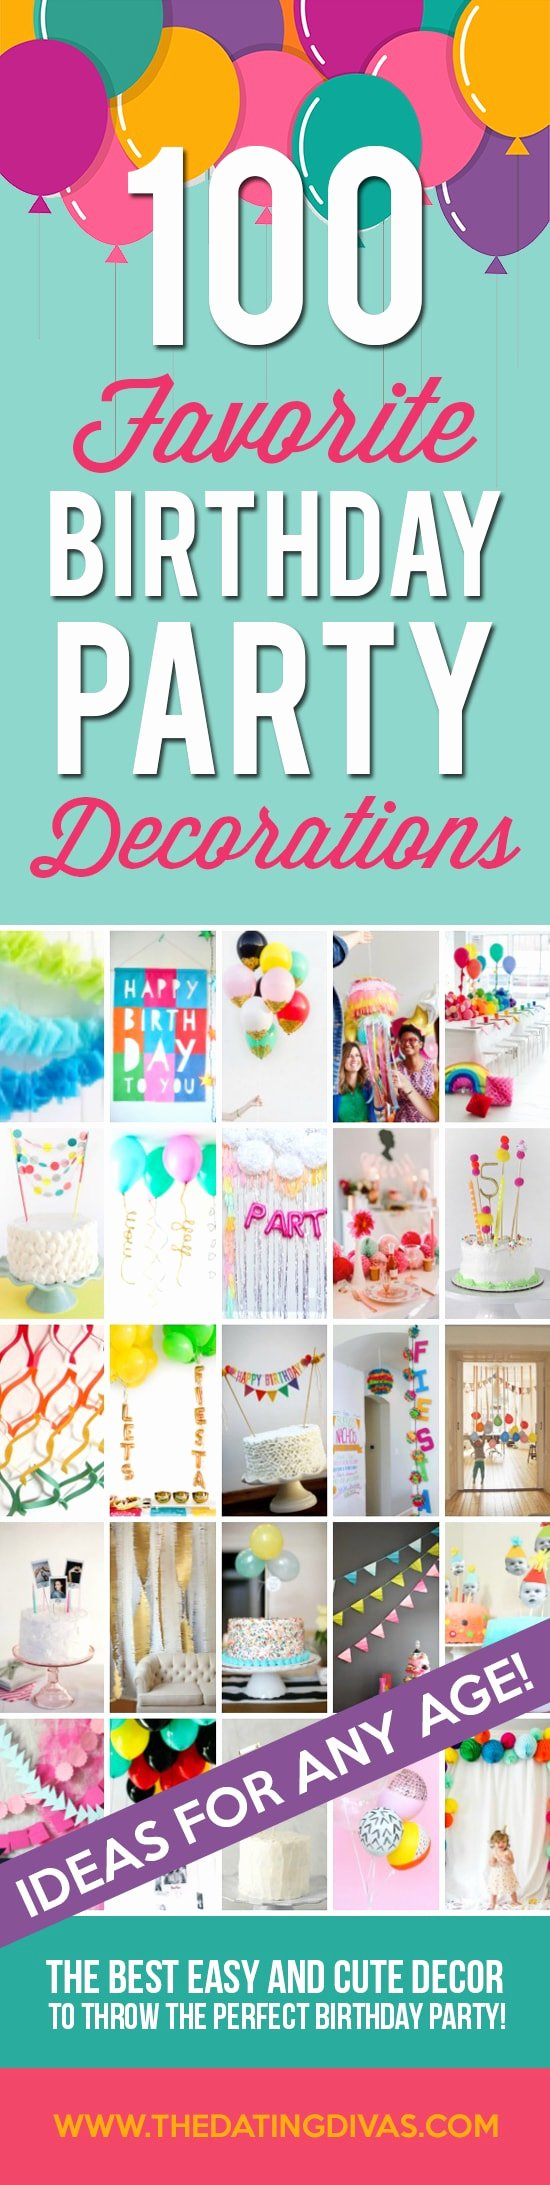 Low Cost Birthday Decoration Ideas New 100 Birthday Party Decoration Ideas the Dating Divas